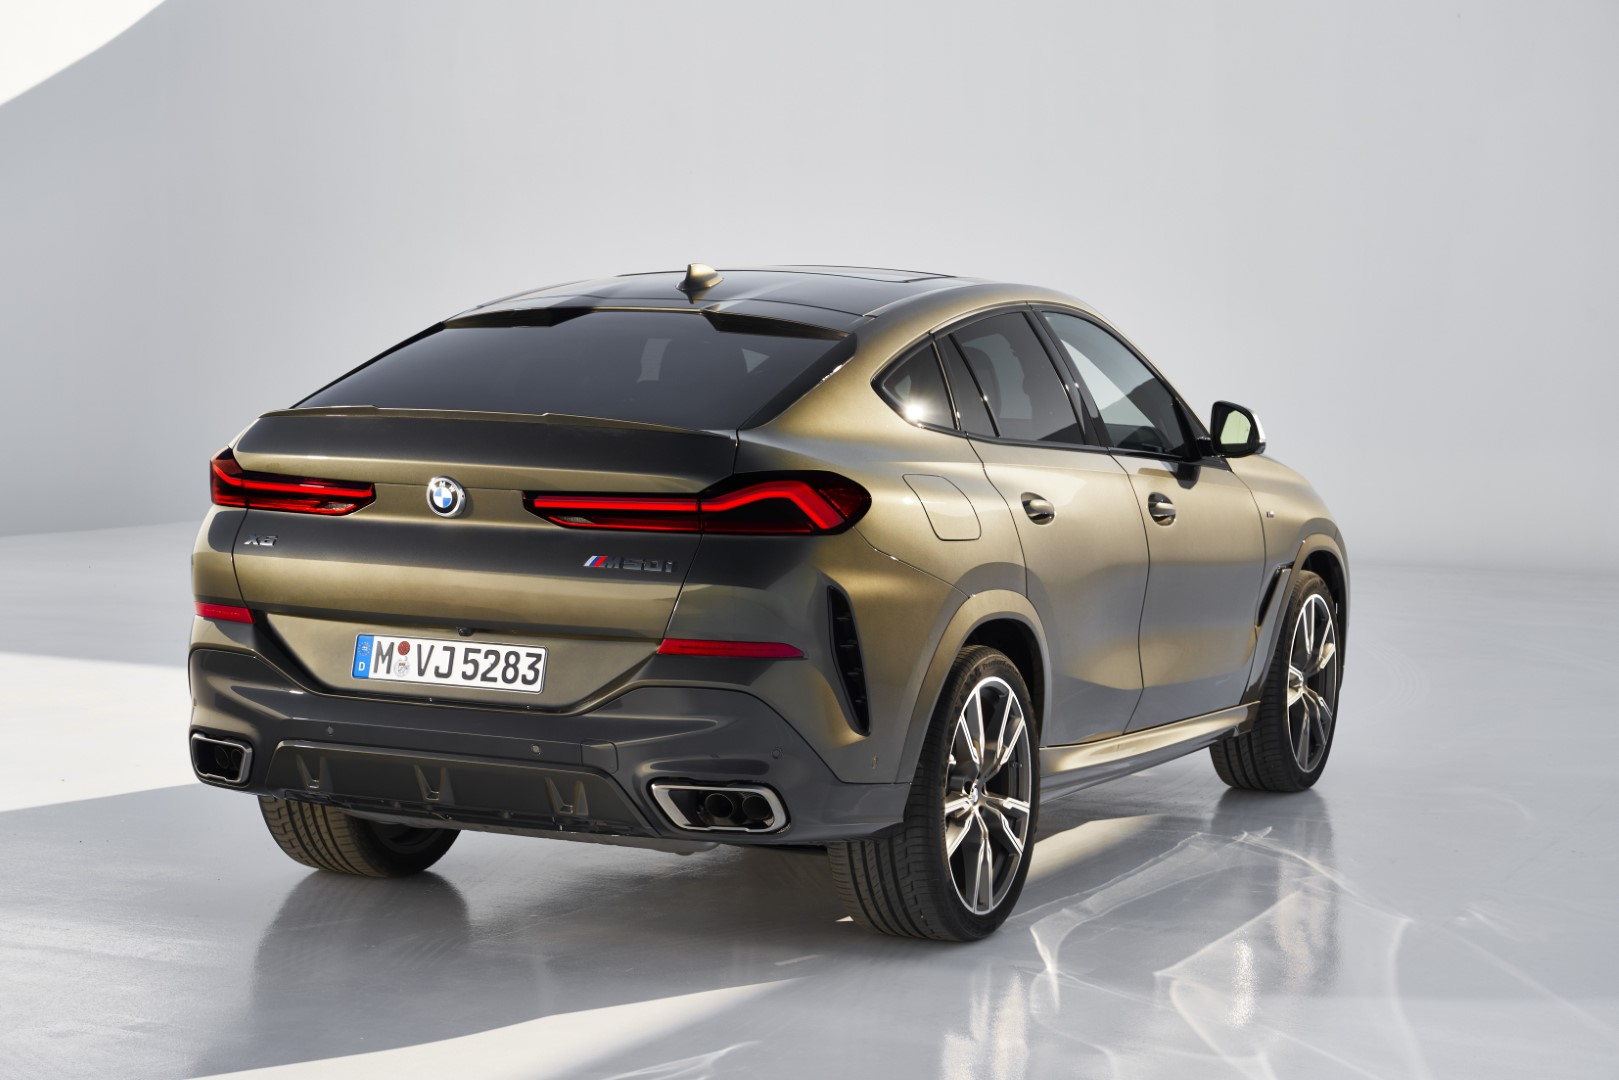 New-Gen 2020 BMW X6 With Illuminated Grille To Launch In India On June 11